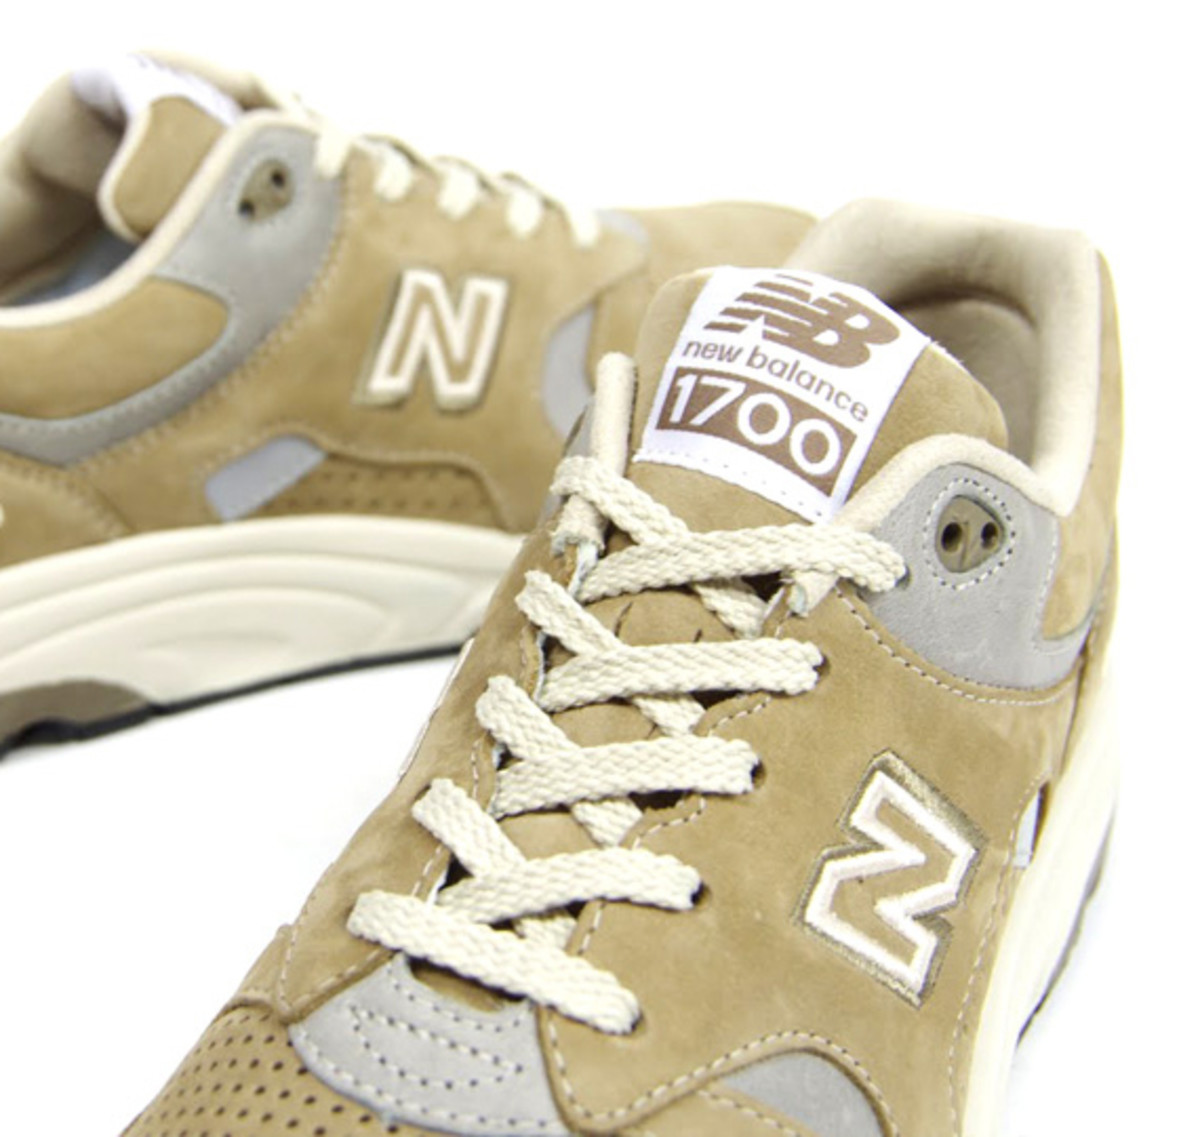 sports shoes 39af6 4ac65 New Balance launched the 1700 in 1999 and it s been loved by both serious  athletes and sneaker heads. Though in the past New Balance focused  predominantly ...